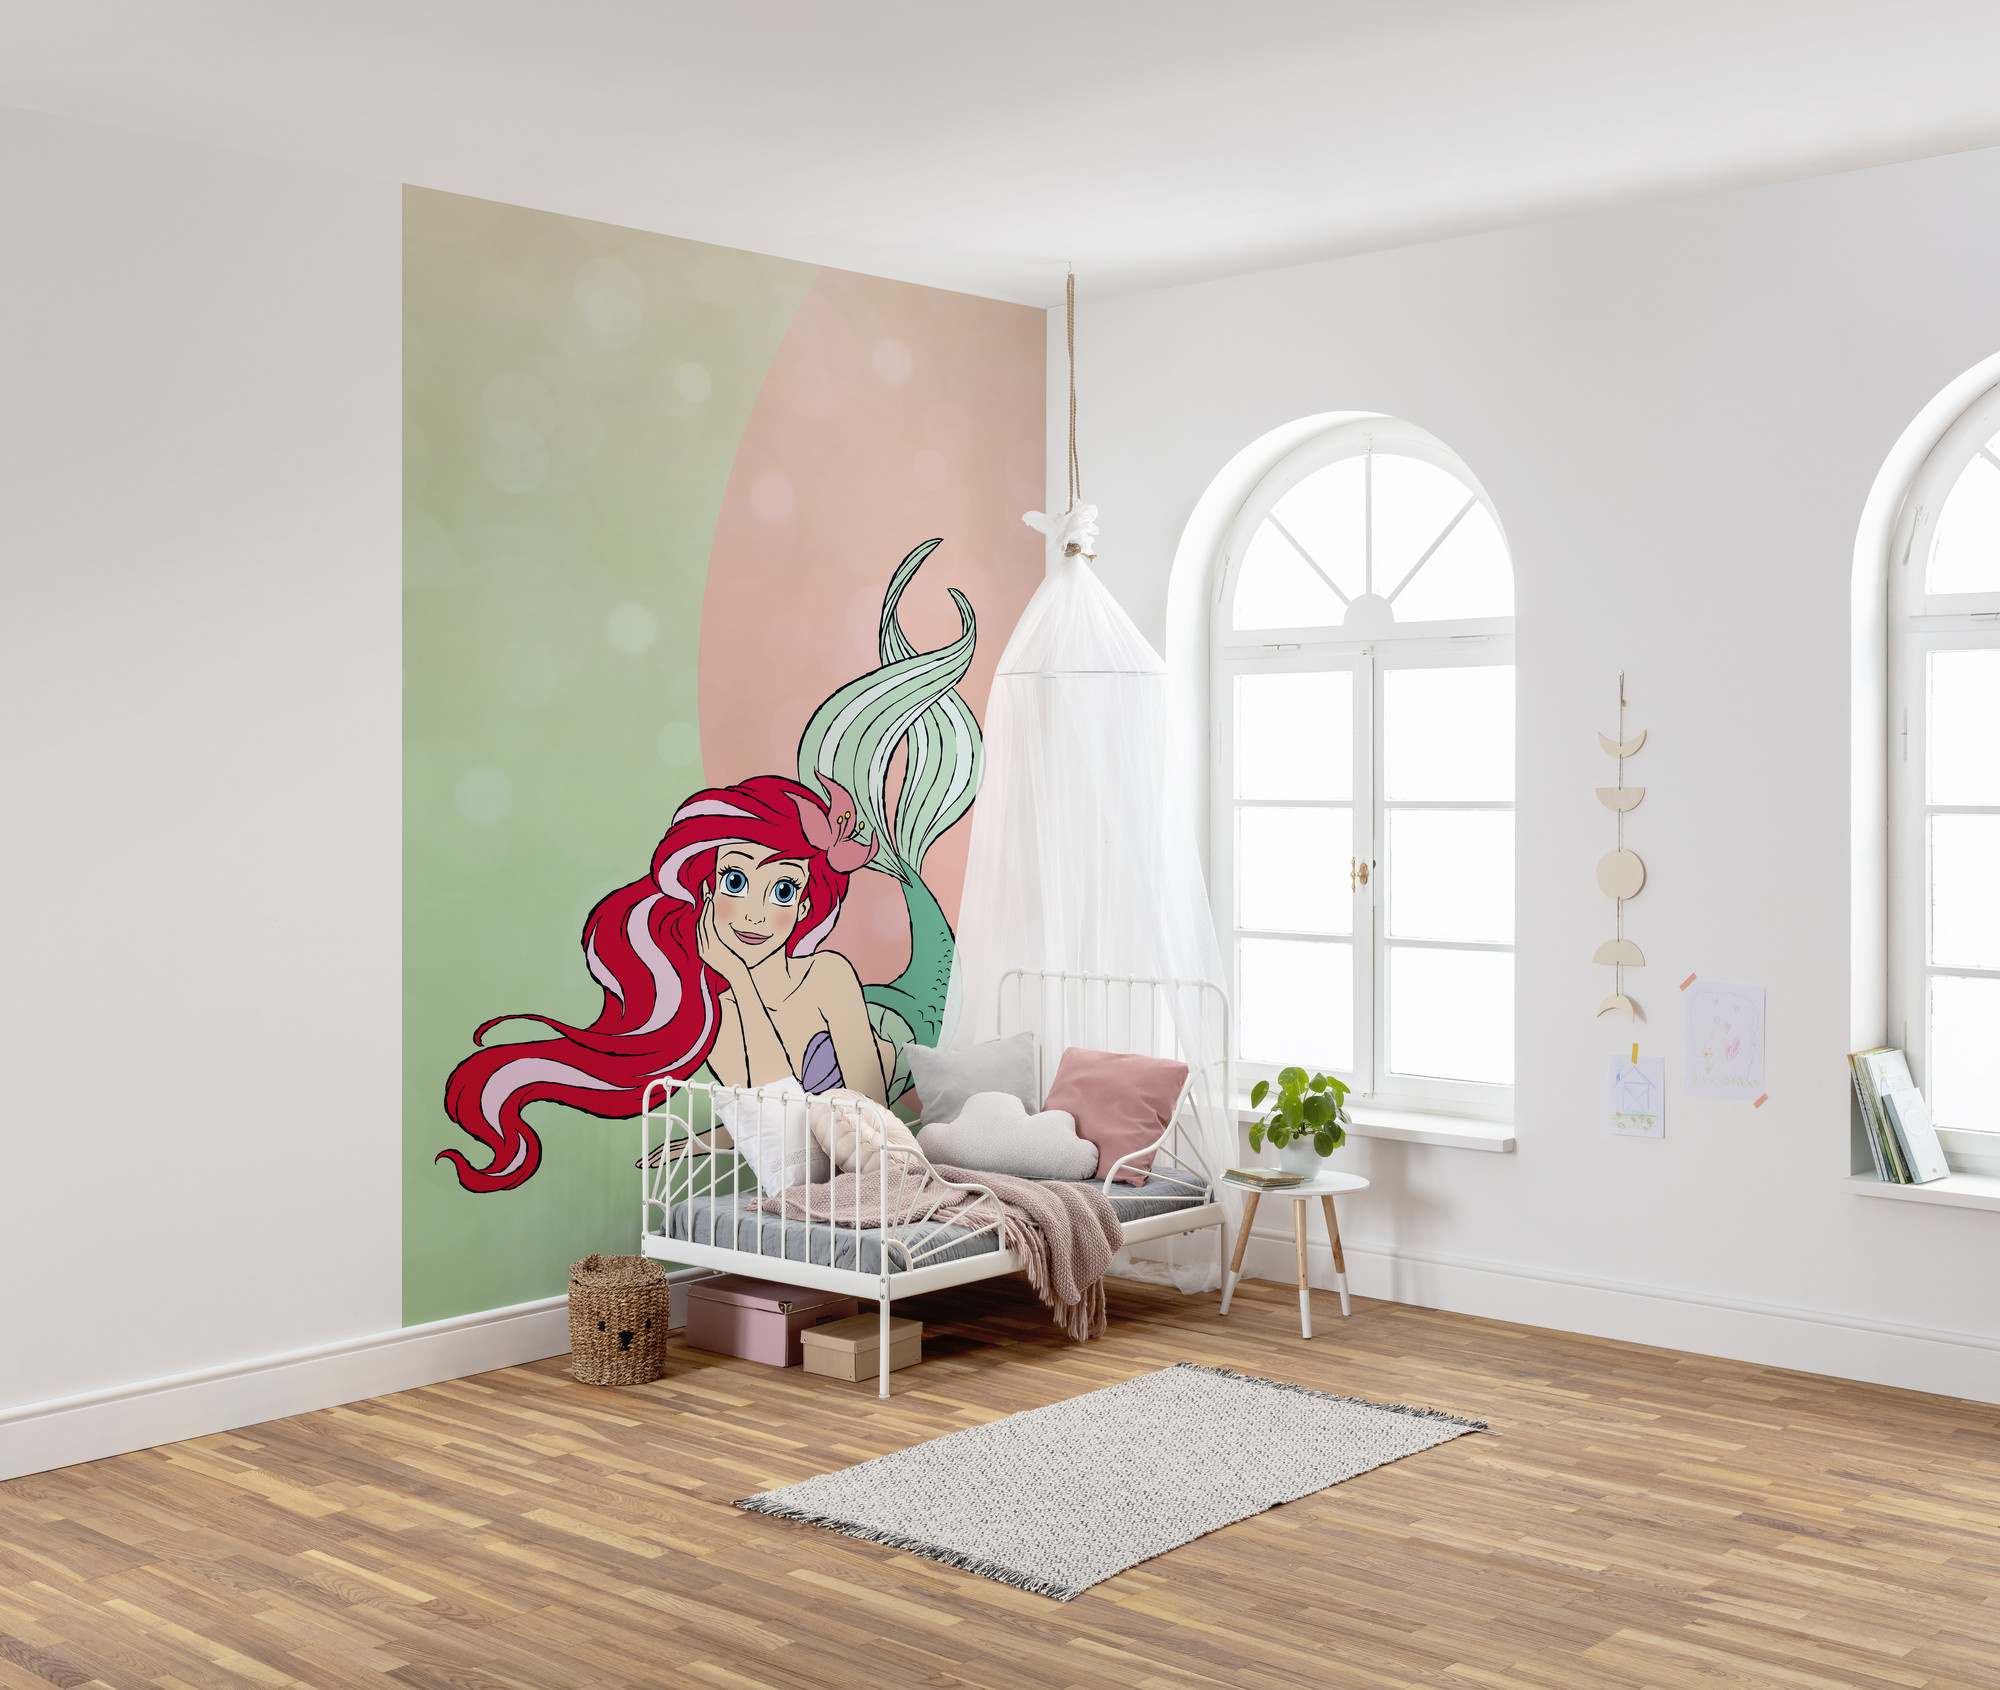 Disney Edition 4 Kinderbehang Komar - Kinderkamer behang Ariel Pastell